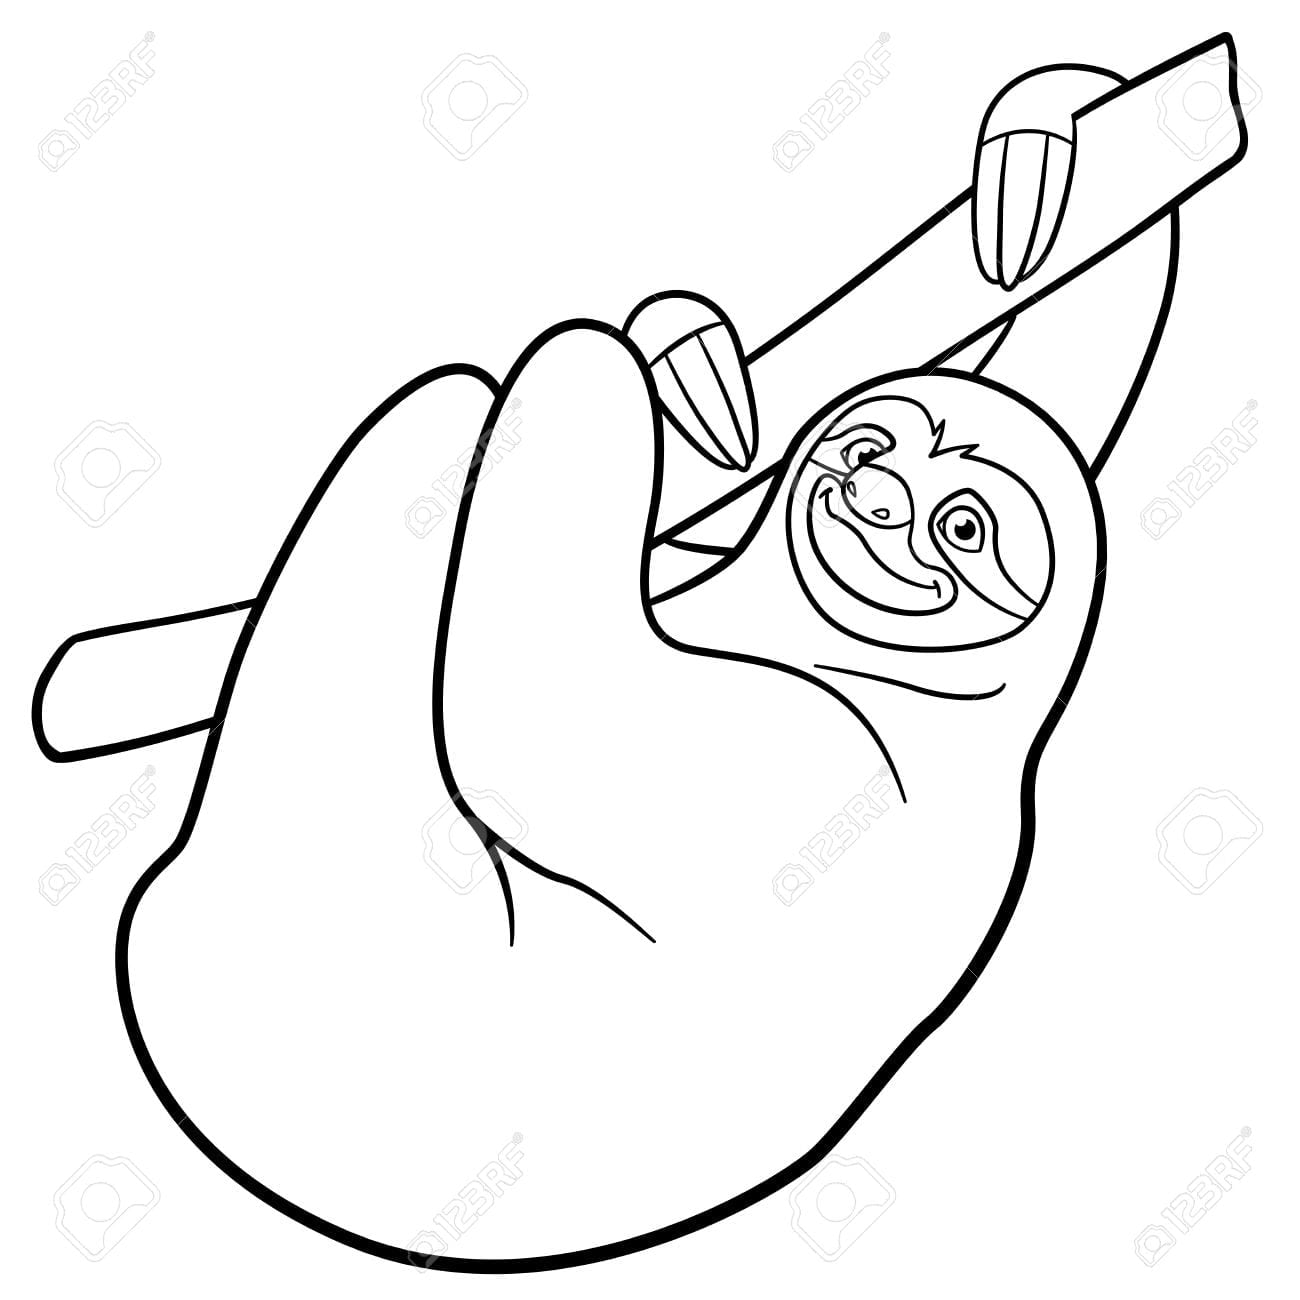 Cool Sloth Coloring Page 82 1230 Sloth Coloring Page Online